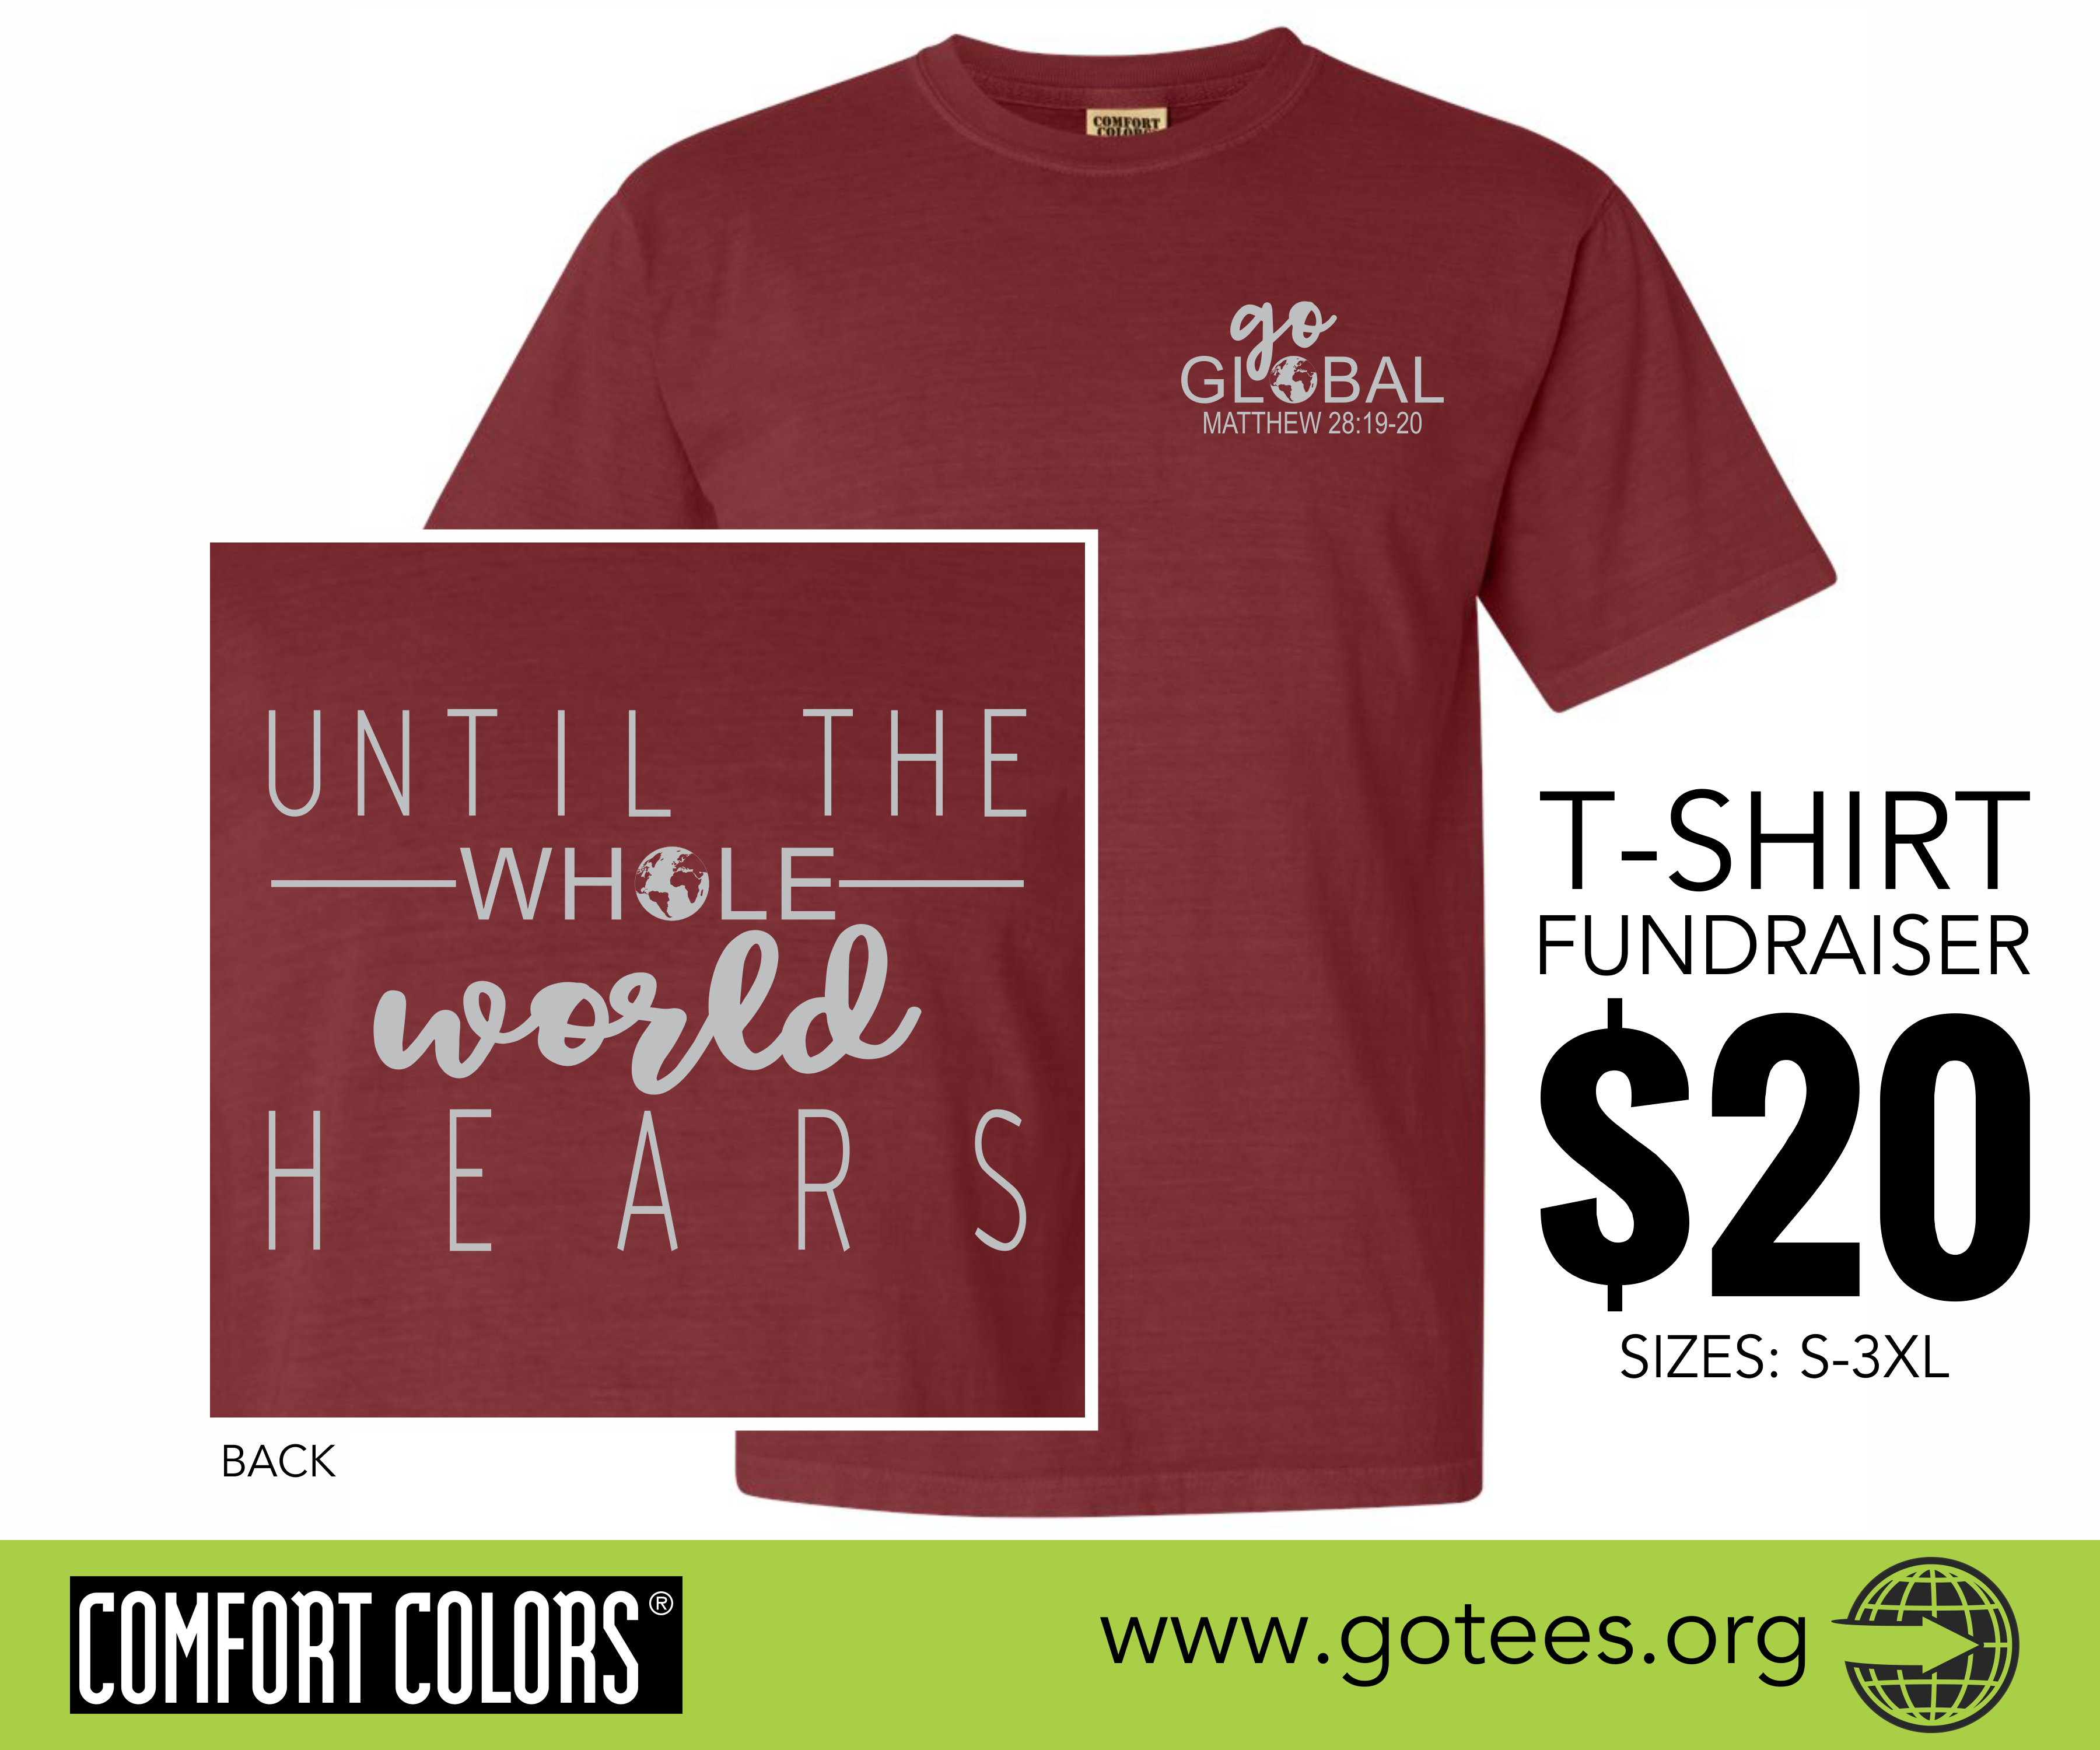 Shirt design cost - You May Want To Consider Our New Online Fundraiser Gotees Has The Capability To Produce Incredible T Shirt Fundraising Campaigns Online